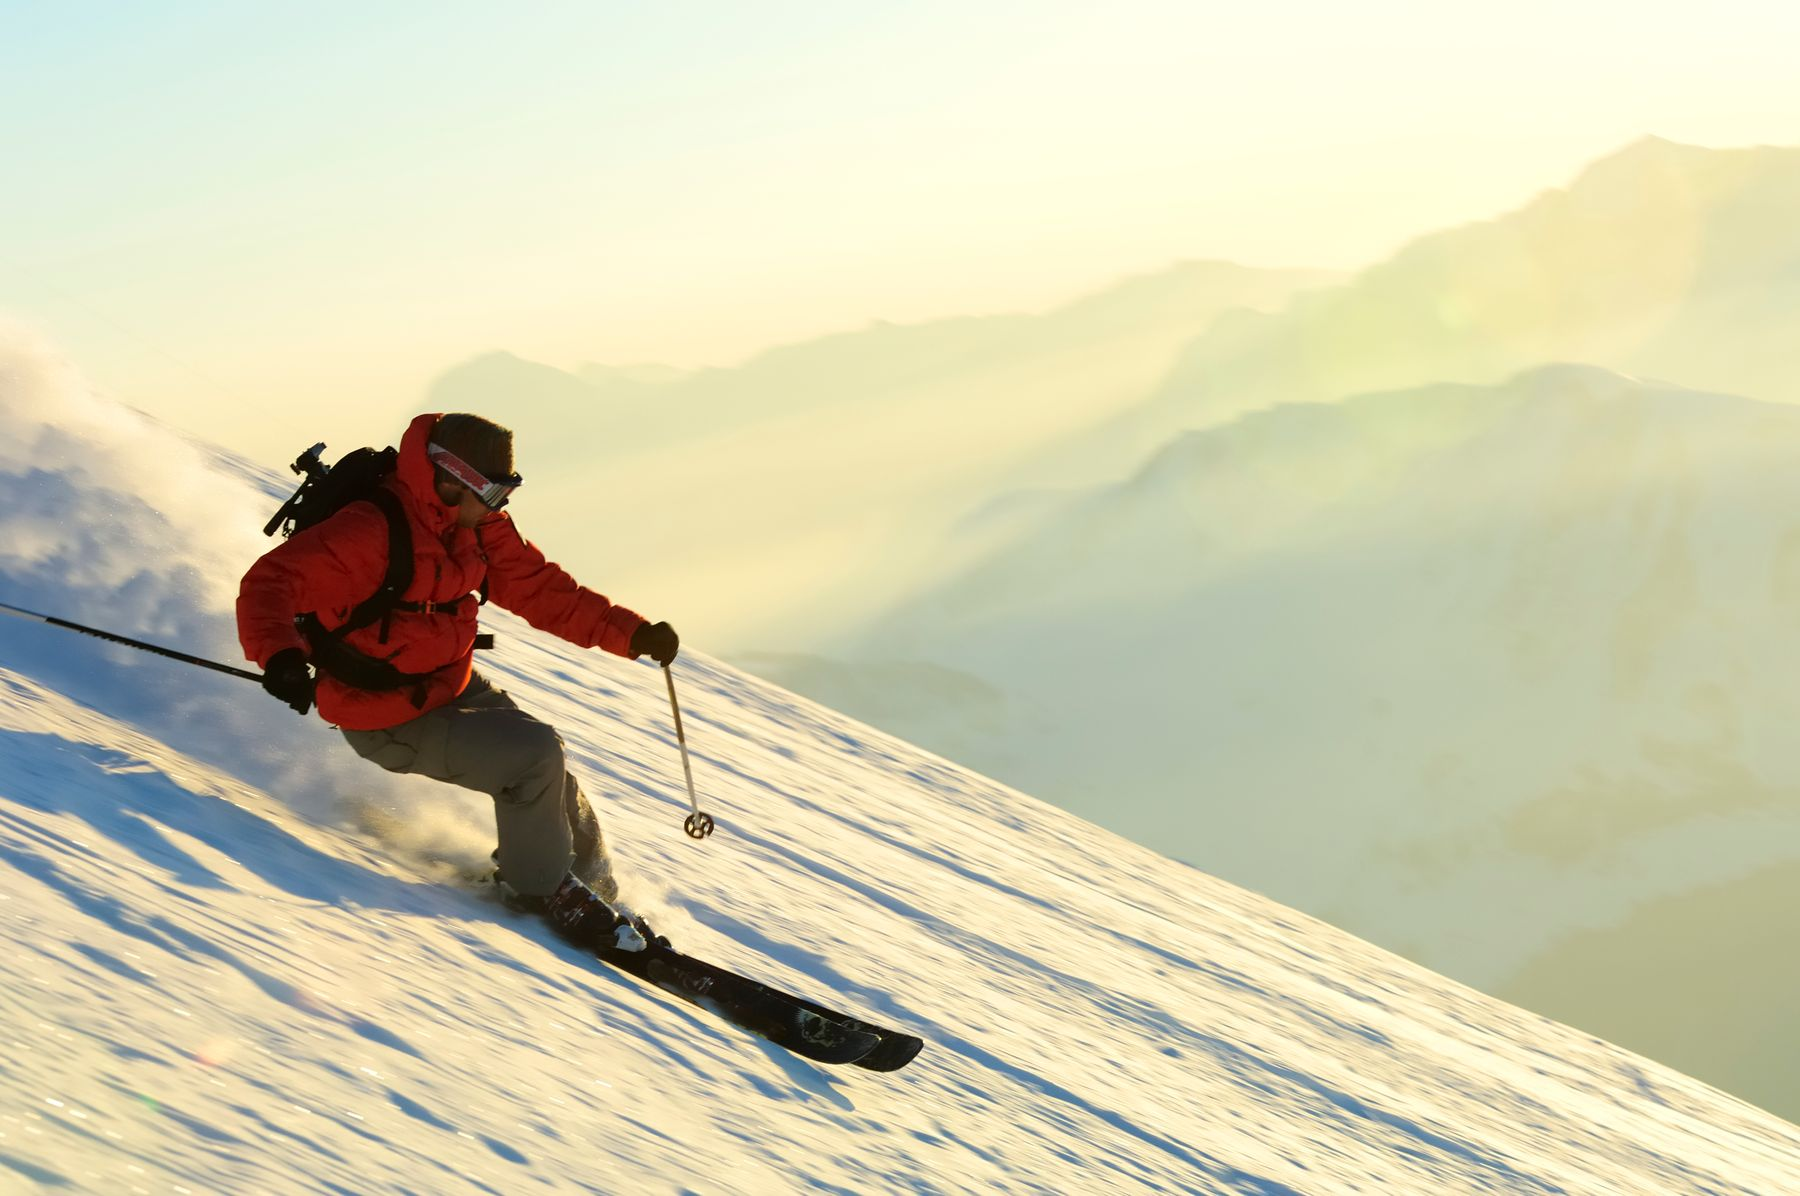 Man skiing down slope; how to ski on a budget in Australia and New Zealand